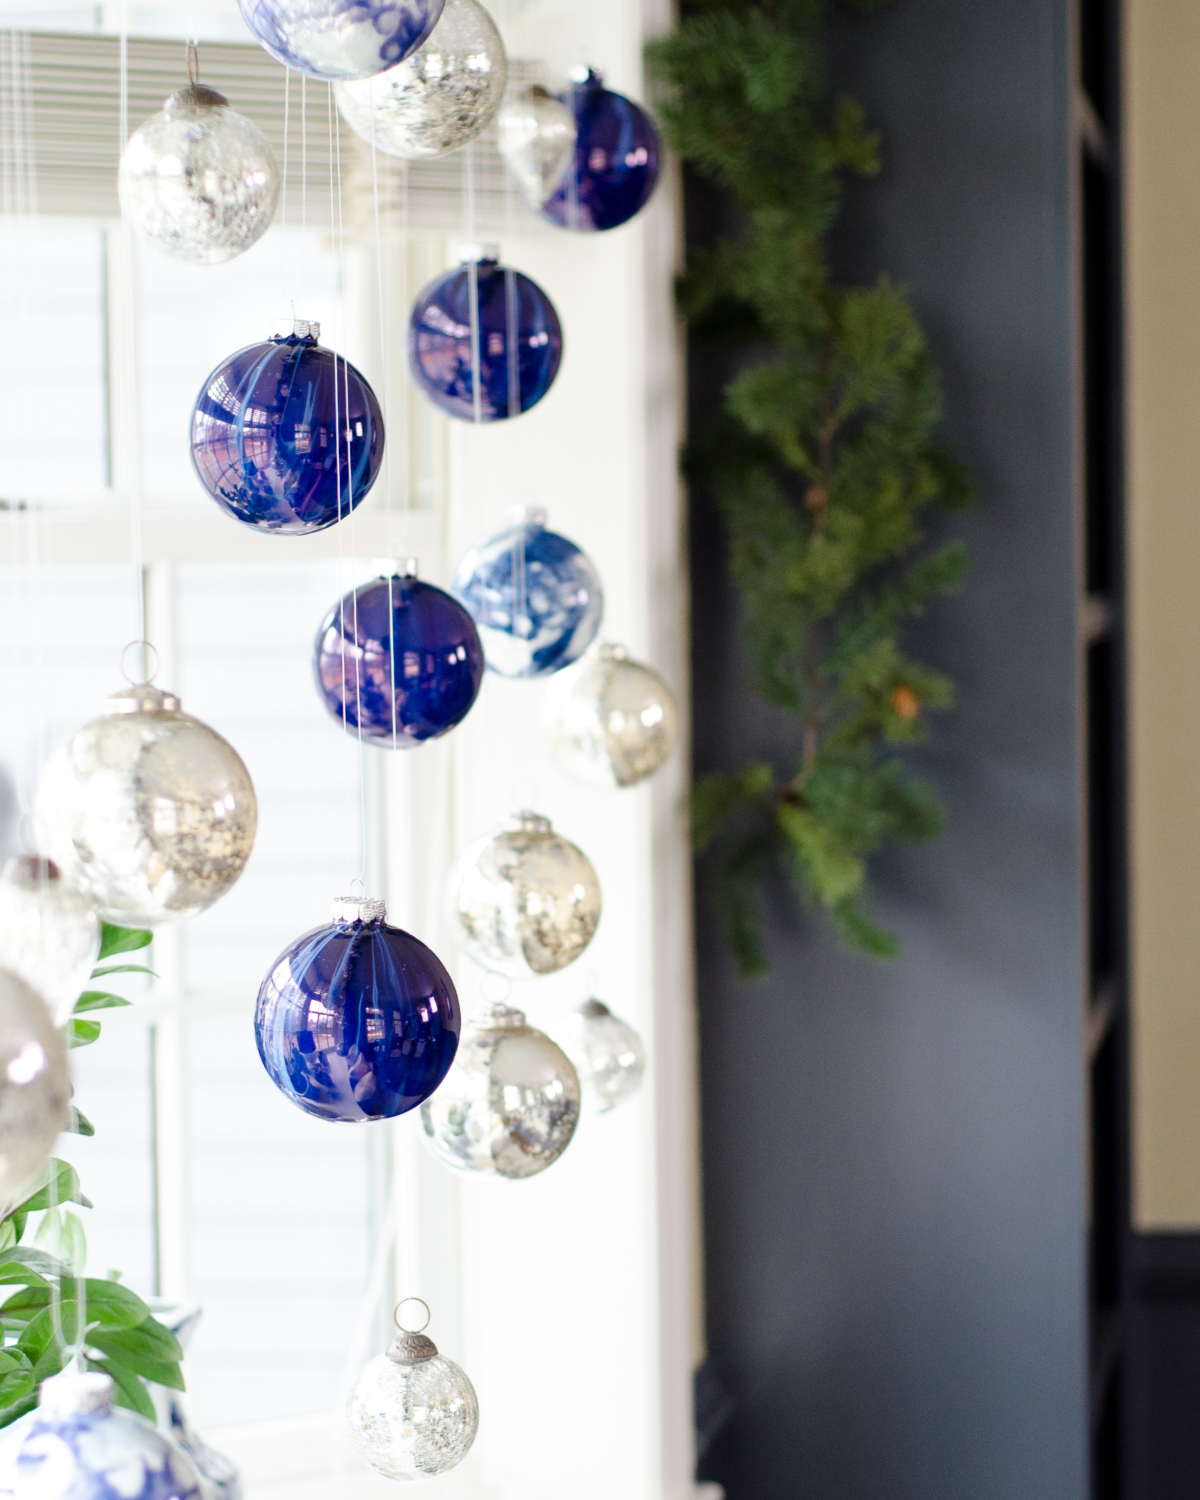 Christmas blue and white ornament window